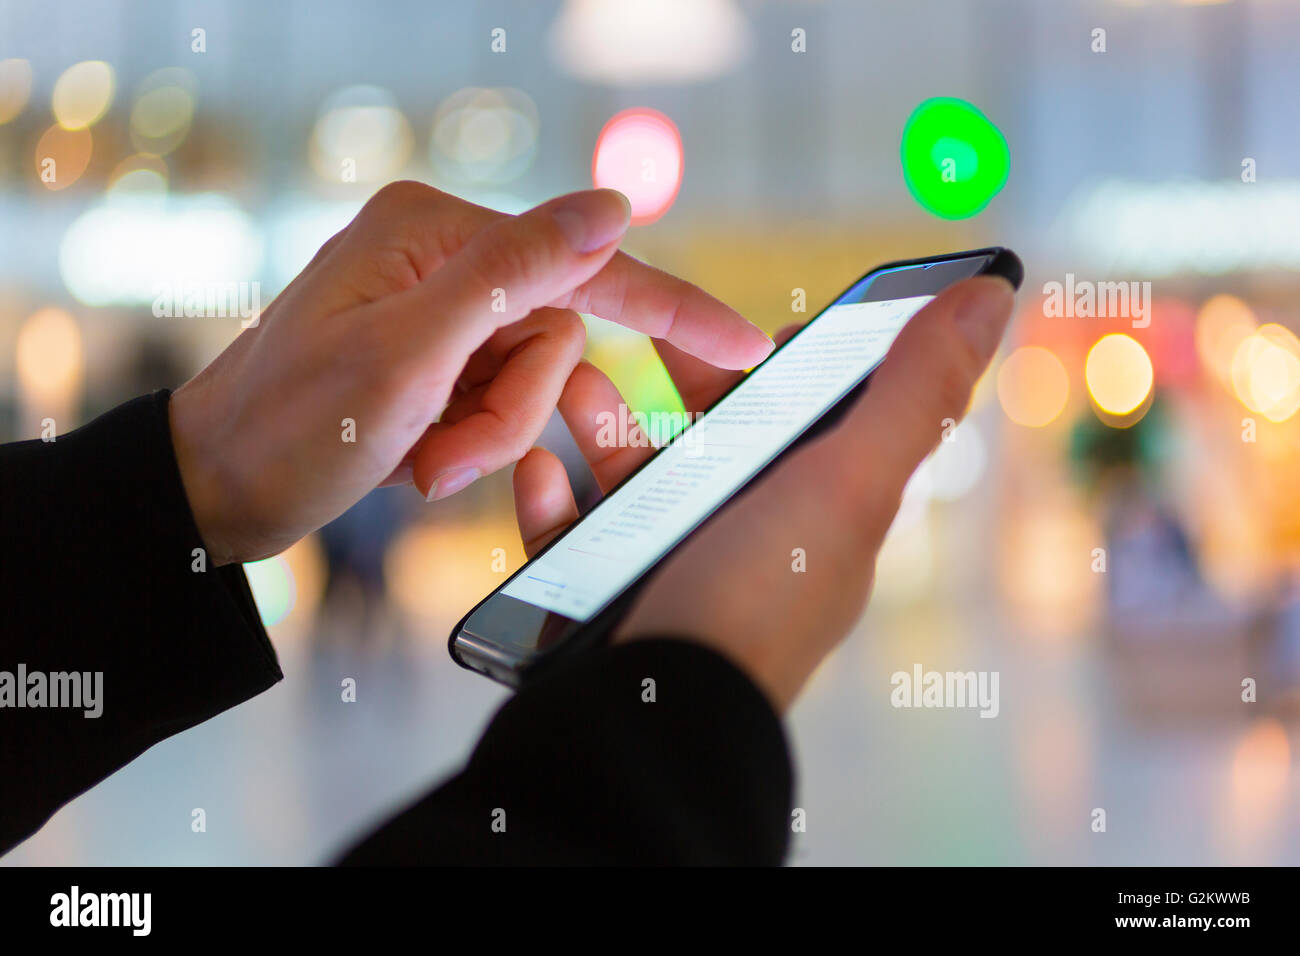 Close up of woman hand text messaging - Stock Image